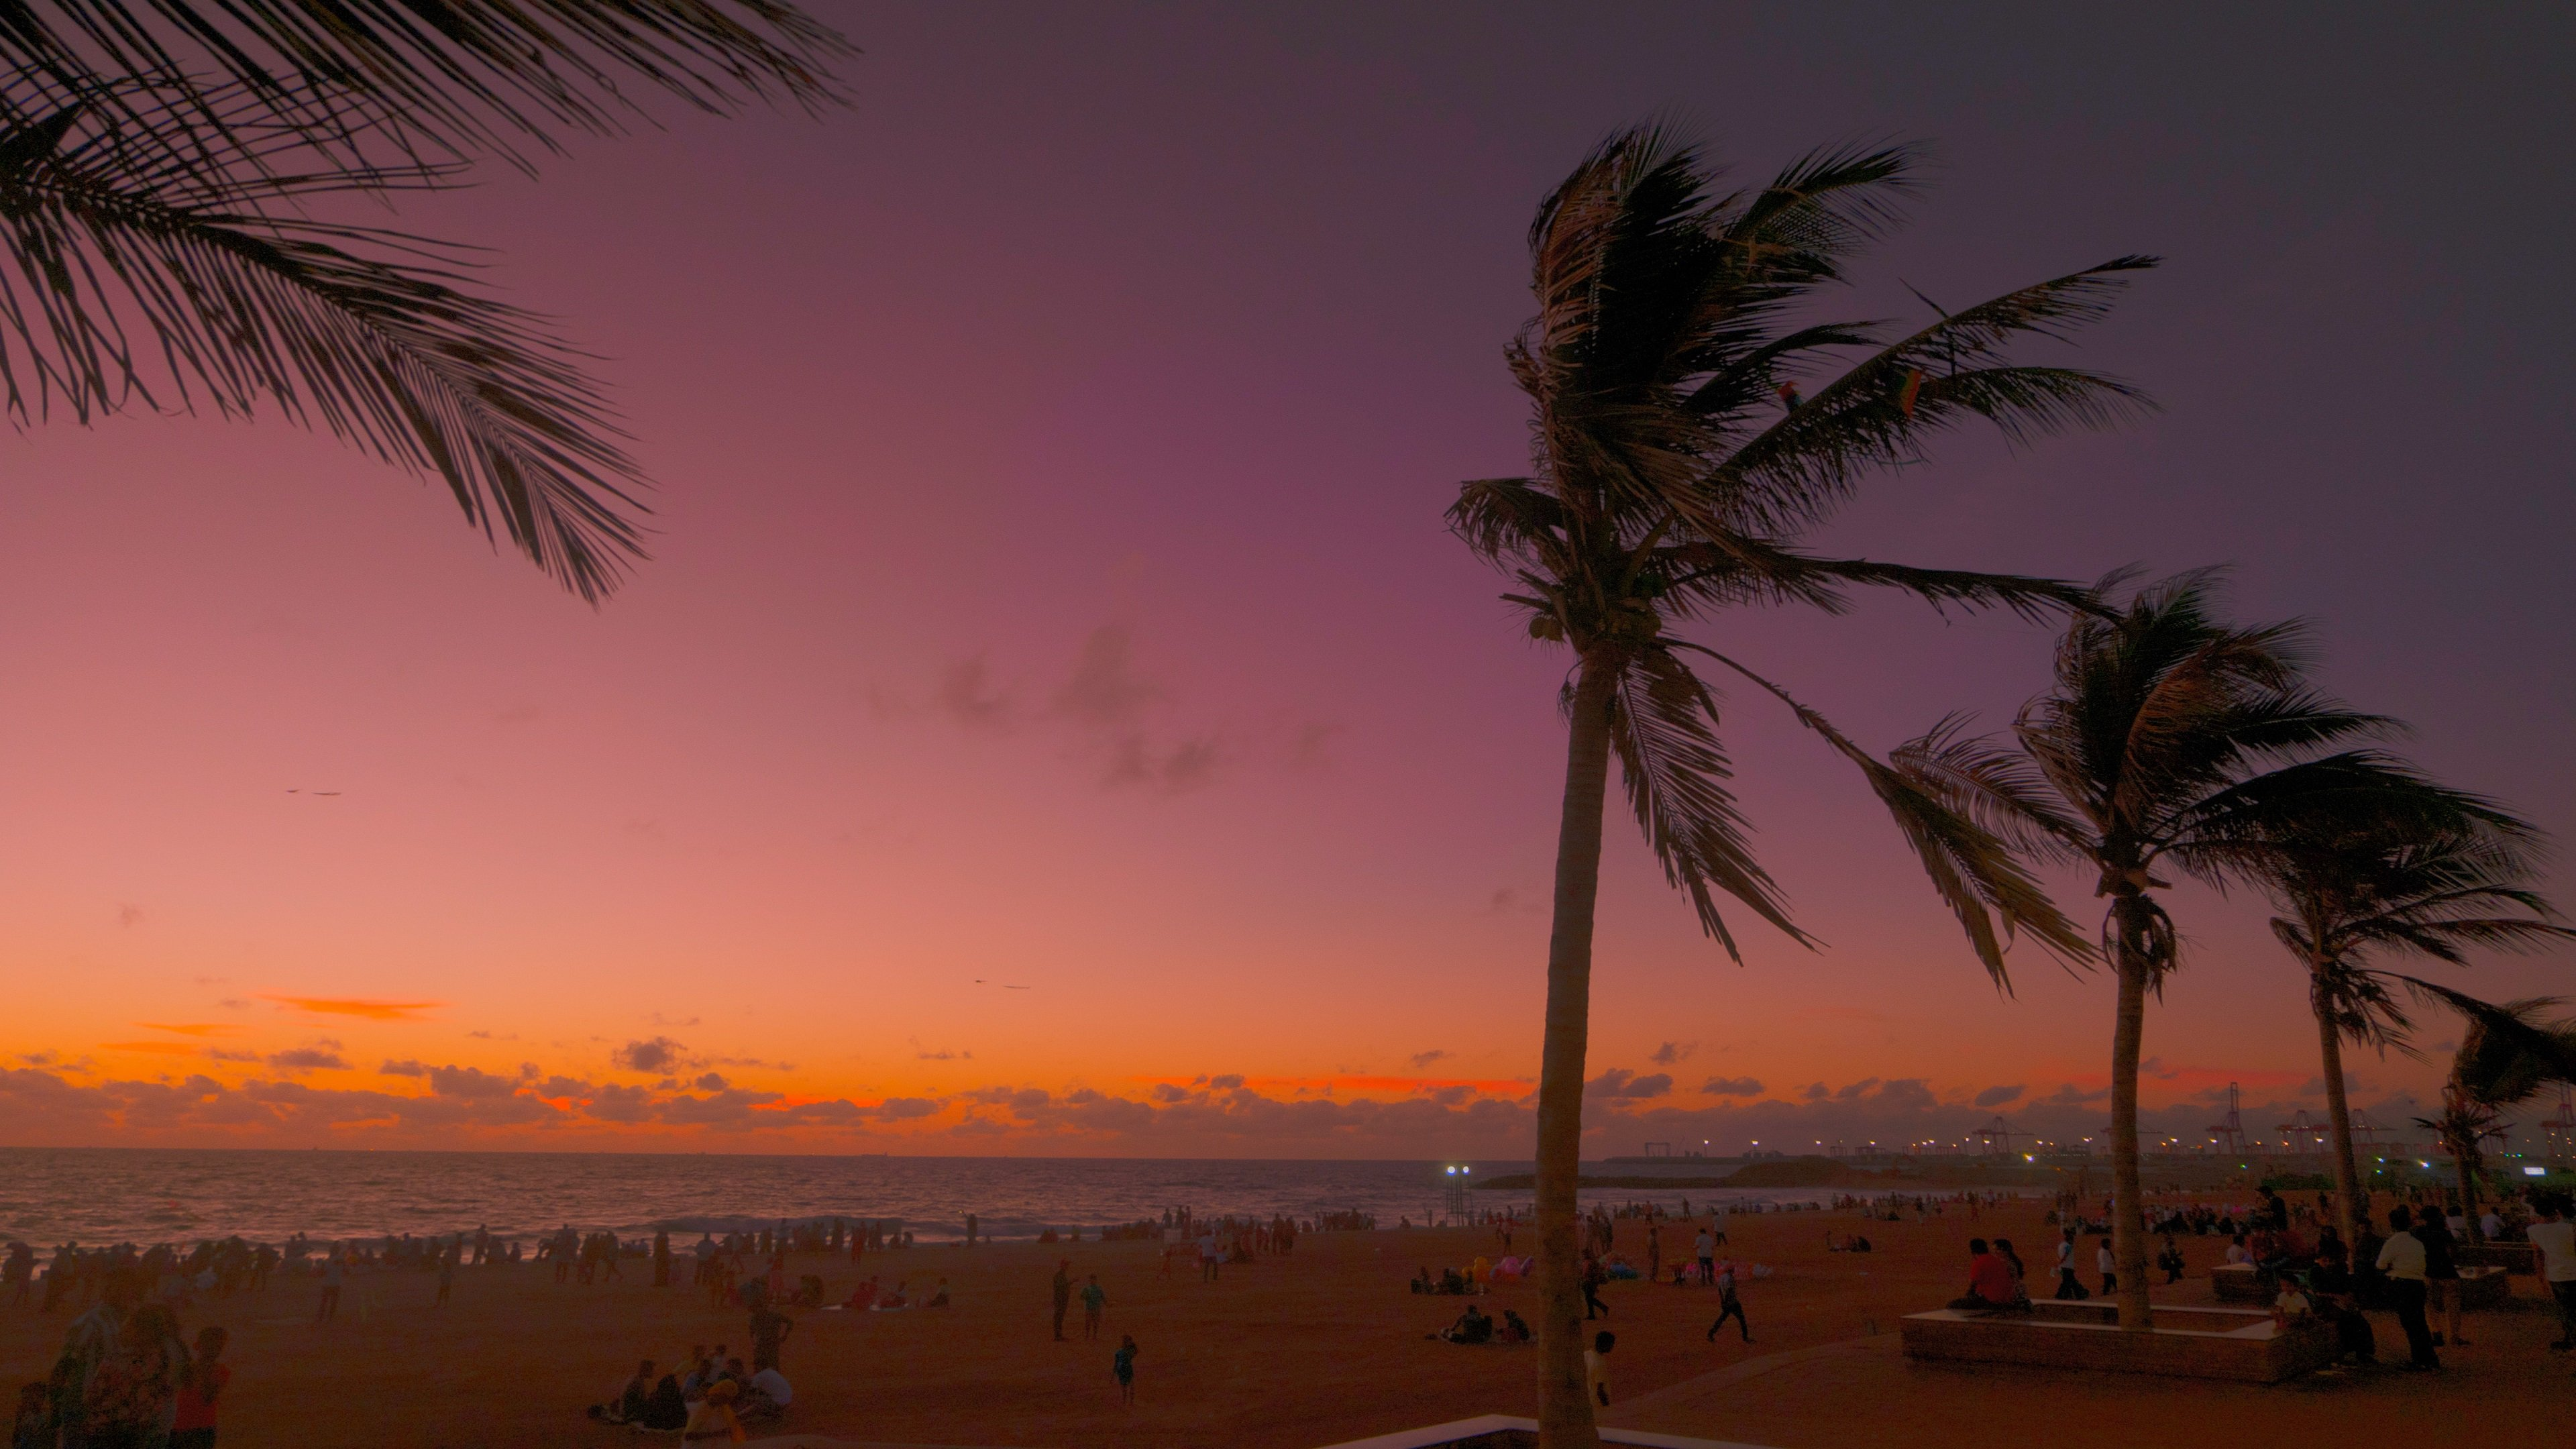 sunset 4K wallpapers for your desktop or mobile screen ...